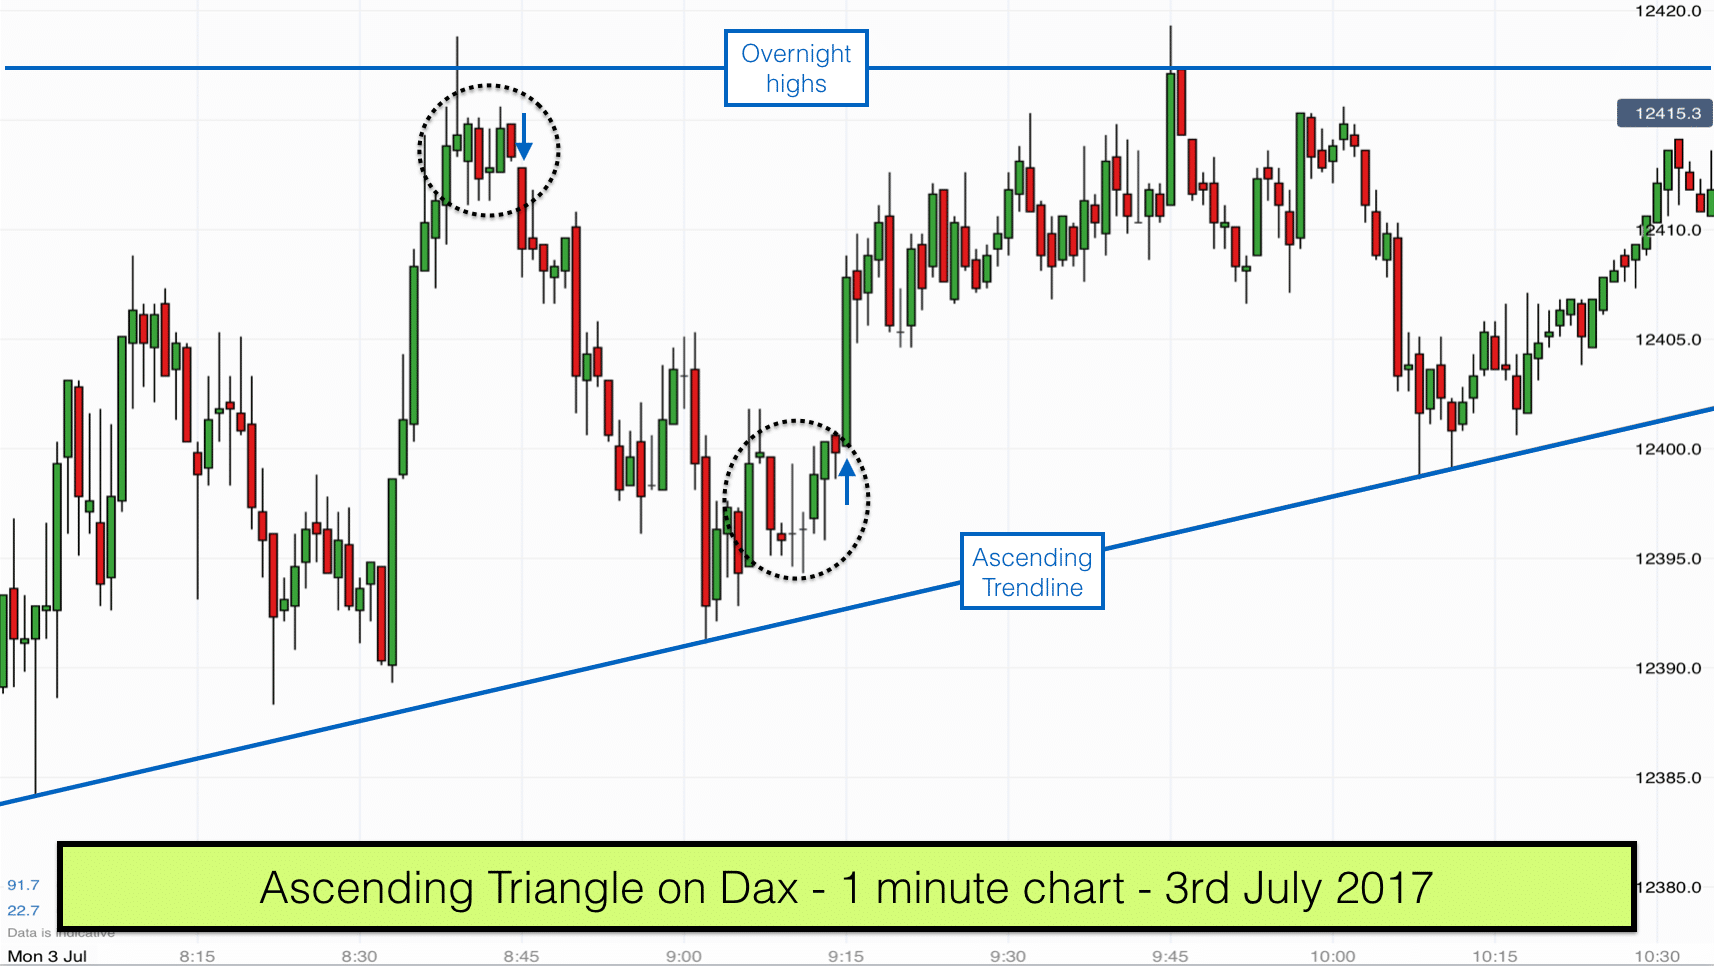 Ascending Triangle on DAX - 3rd July 2017